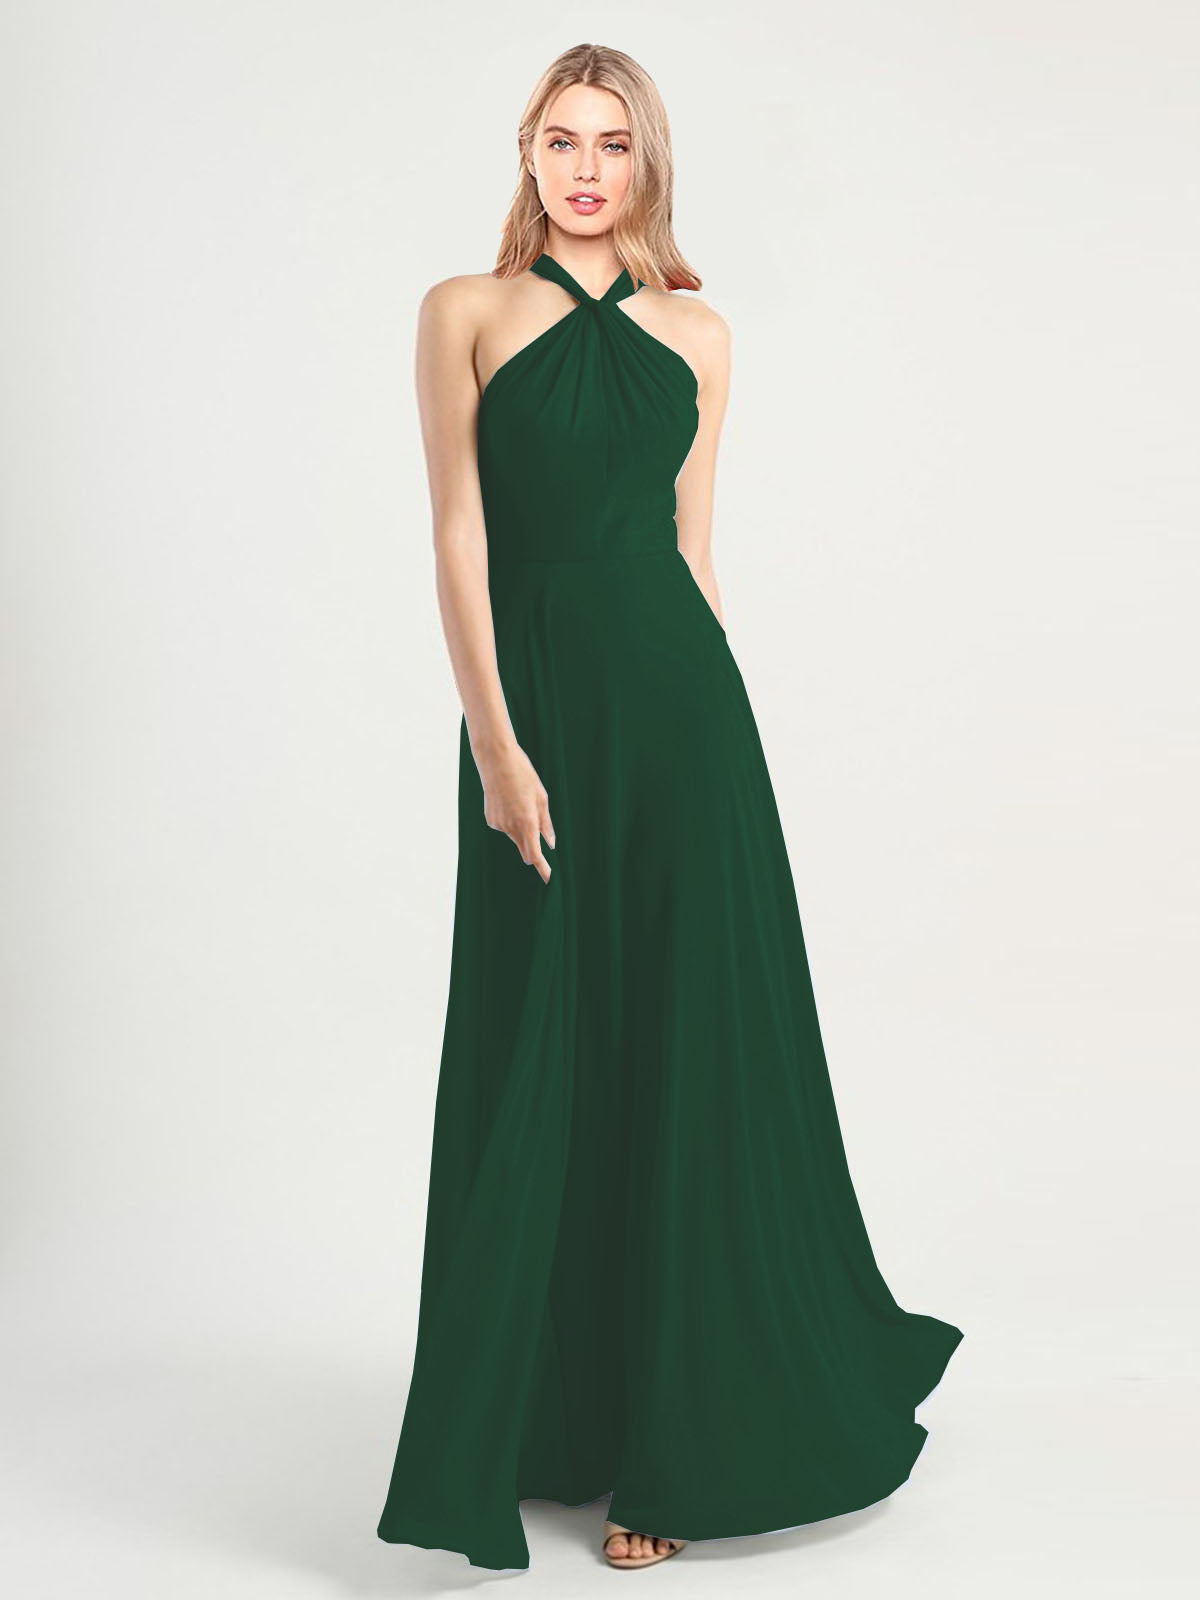 Long A-Line High Neck, Halter Sleeveless Dark Green Chiffon Bridesmaid Dress Yoli